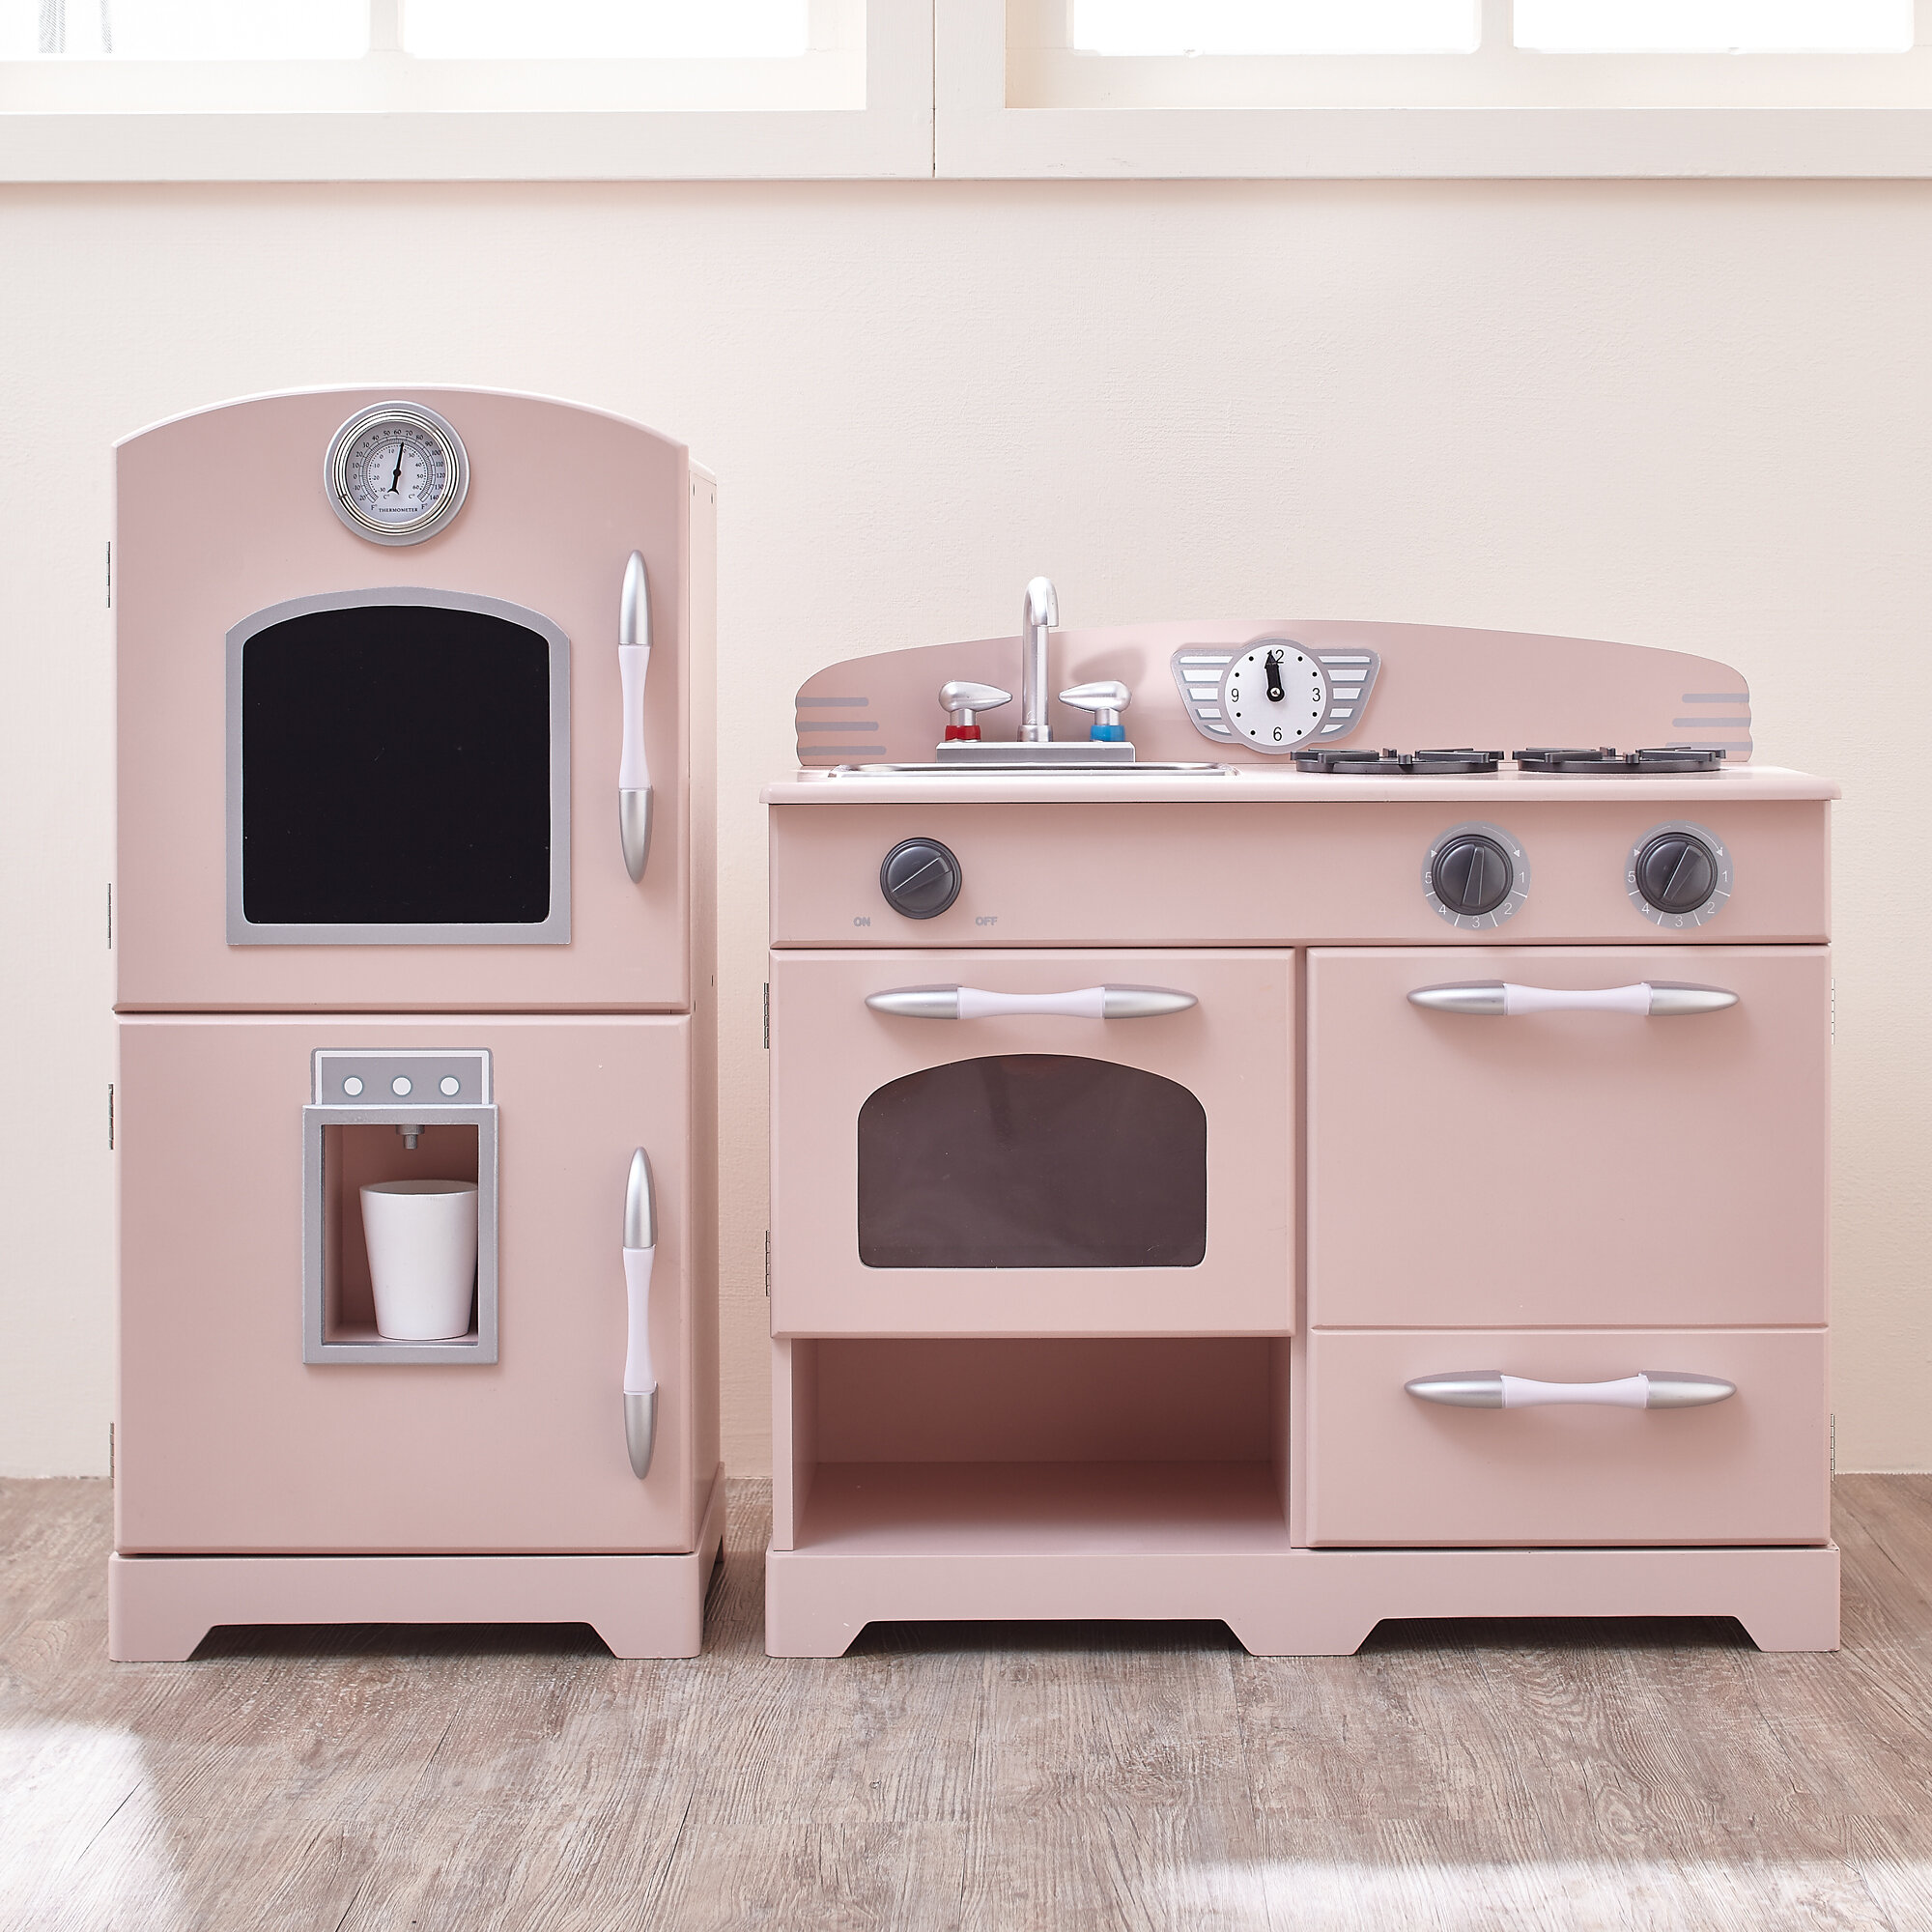 63e923eab0f 2 Piece Wooden Play Kitchen Set. See More by Teamson Kids